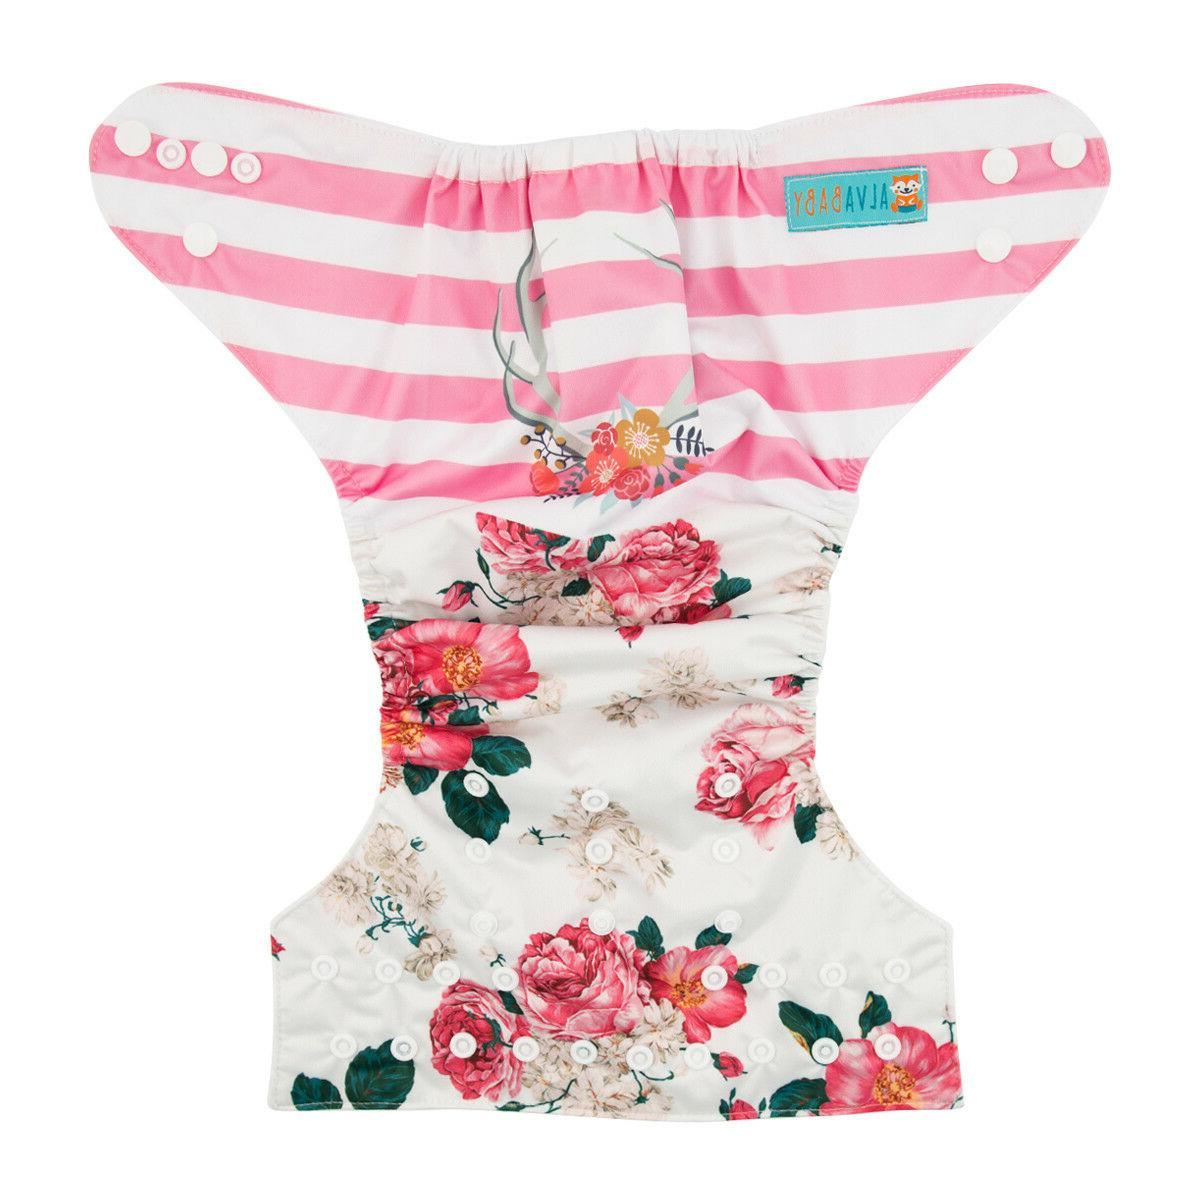 ALVABABY Cloth Diaper Girl One Reusable Washable Pocket Nappy +1